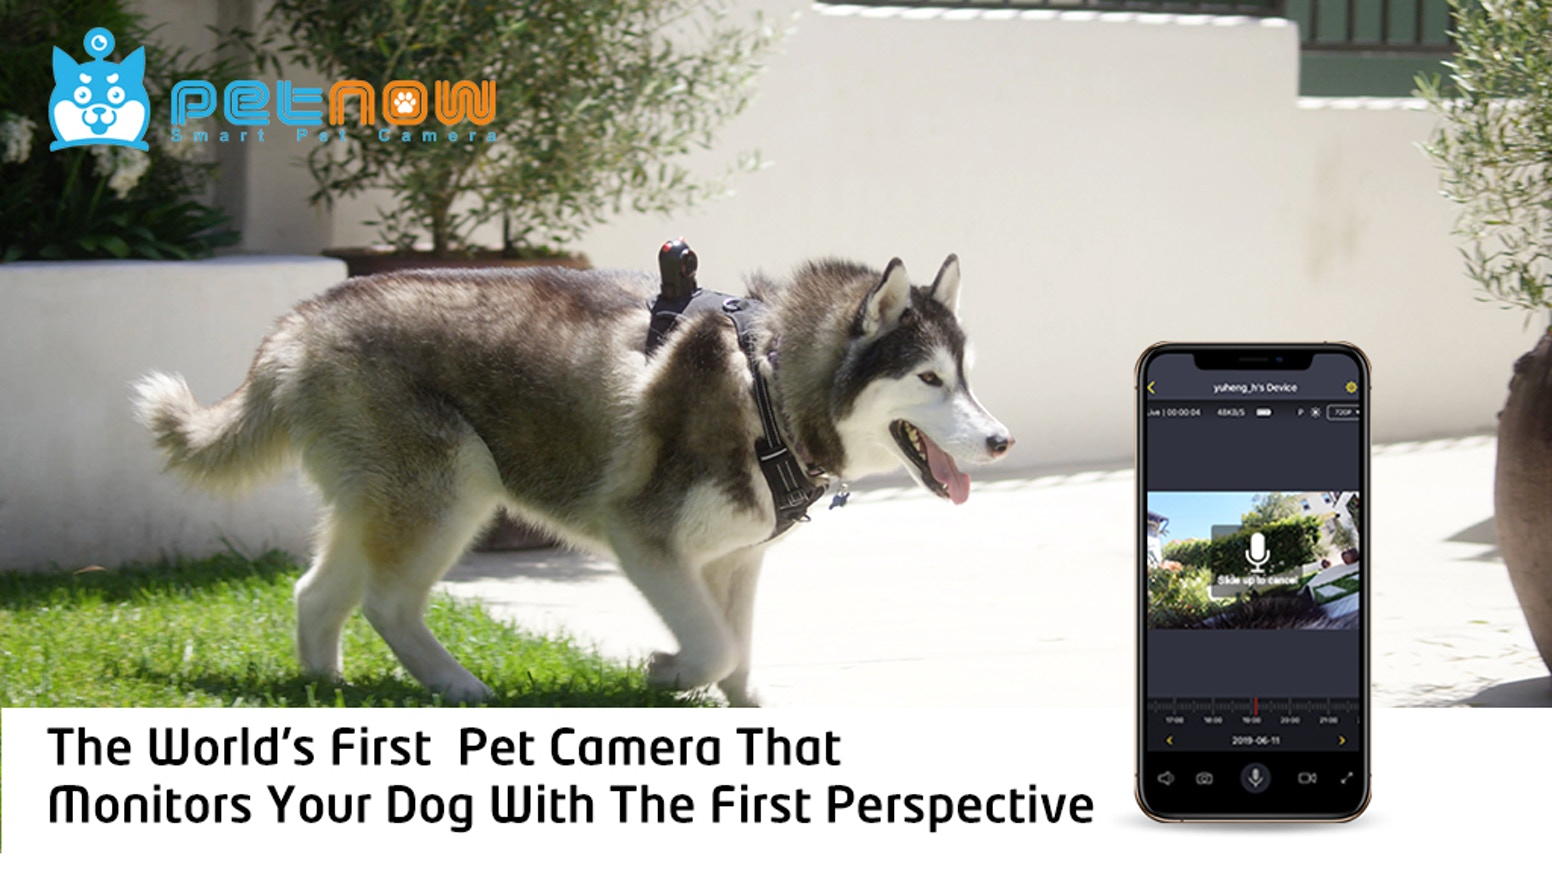 The world's first pet camera that monitors your dog with the first perspective